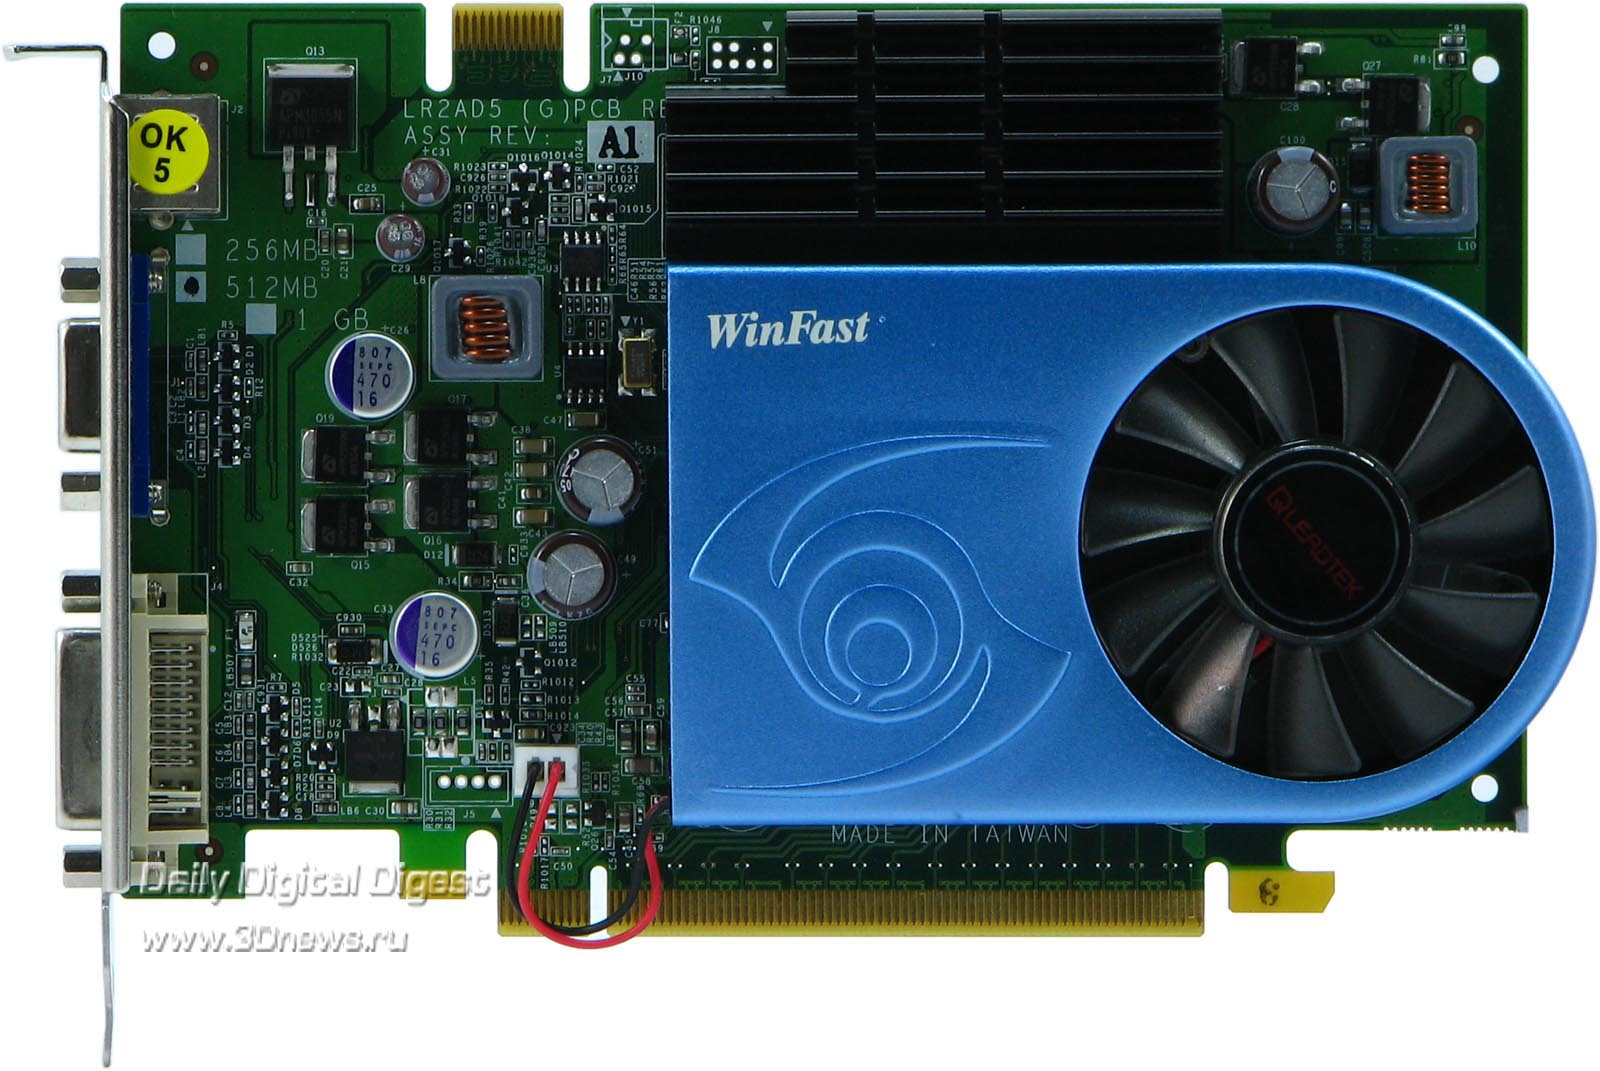 NVIDIA GeForce GT Video Card Driver Download